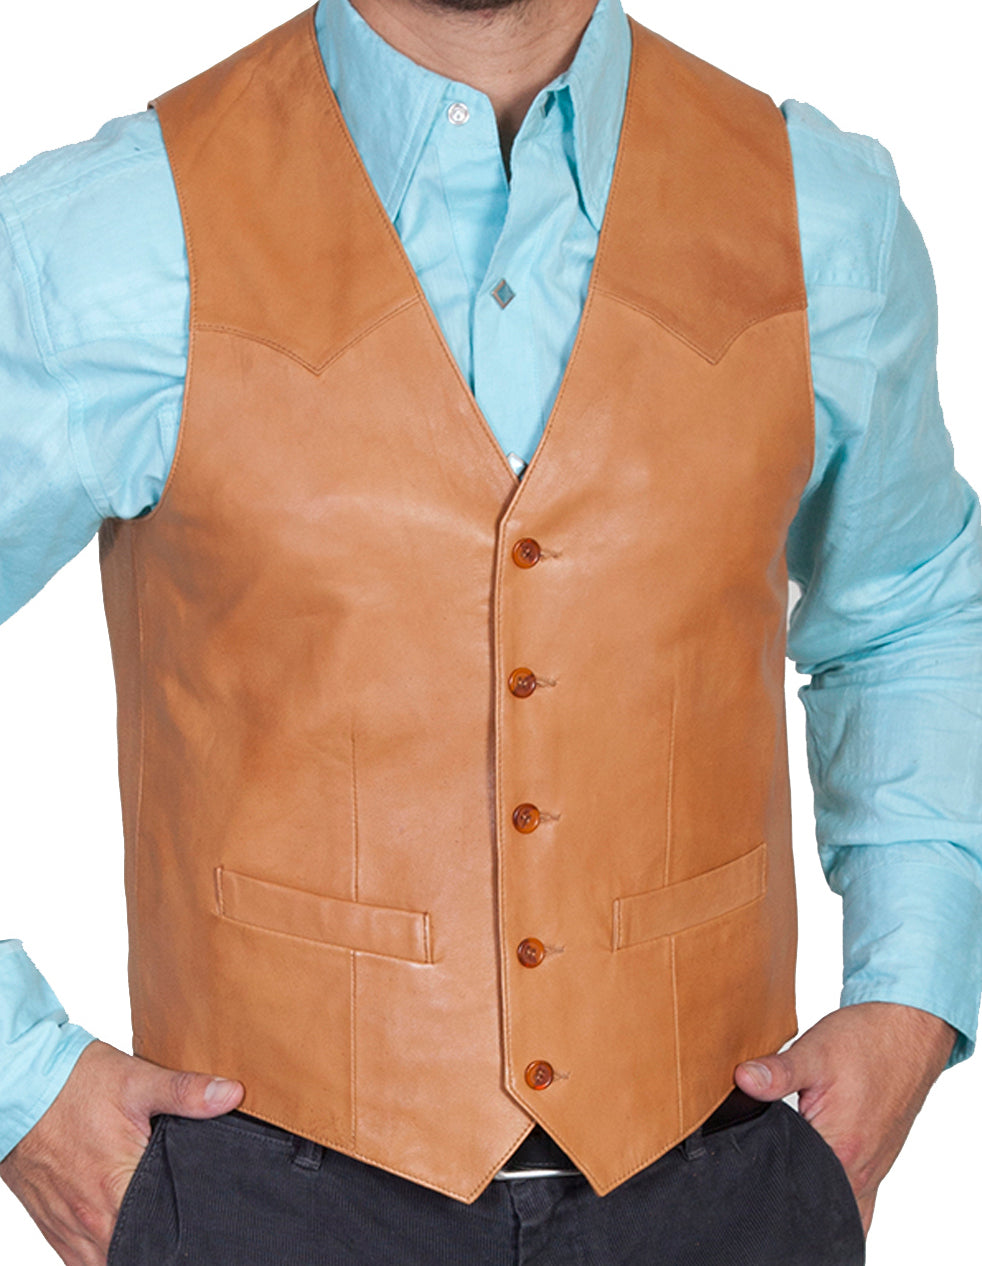 Man-Wearing-Ranch-Tan-Leather-Vest-Western-Cut-by-Scully-503-171